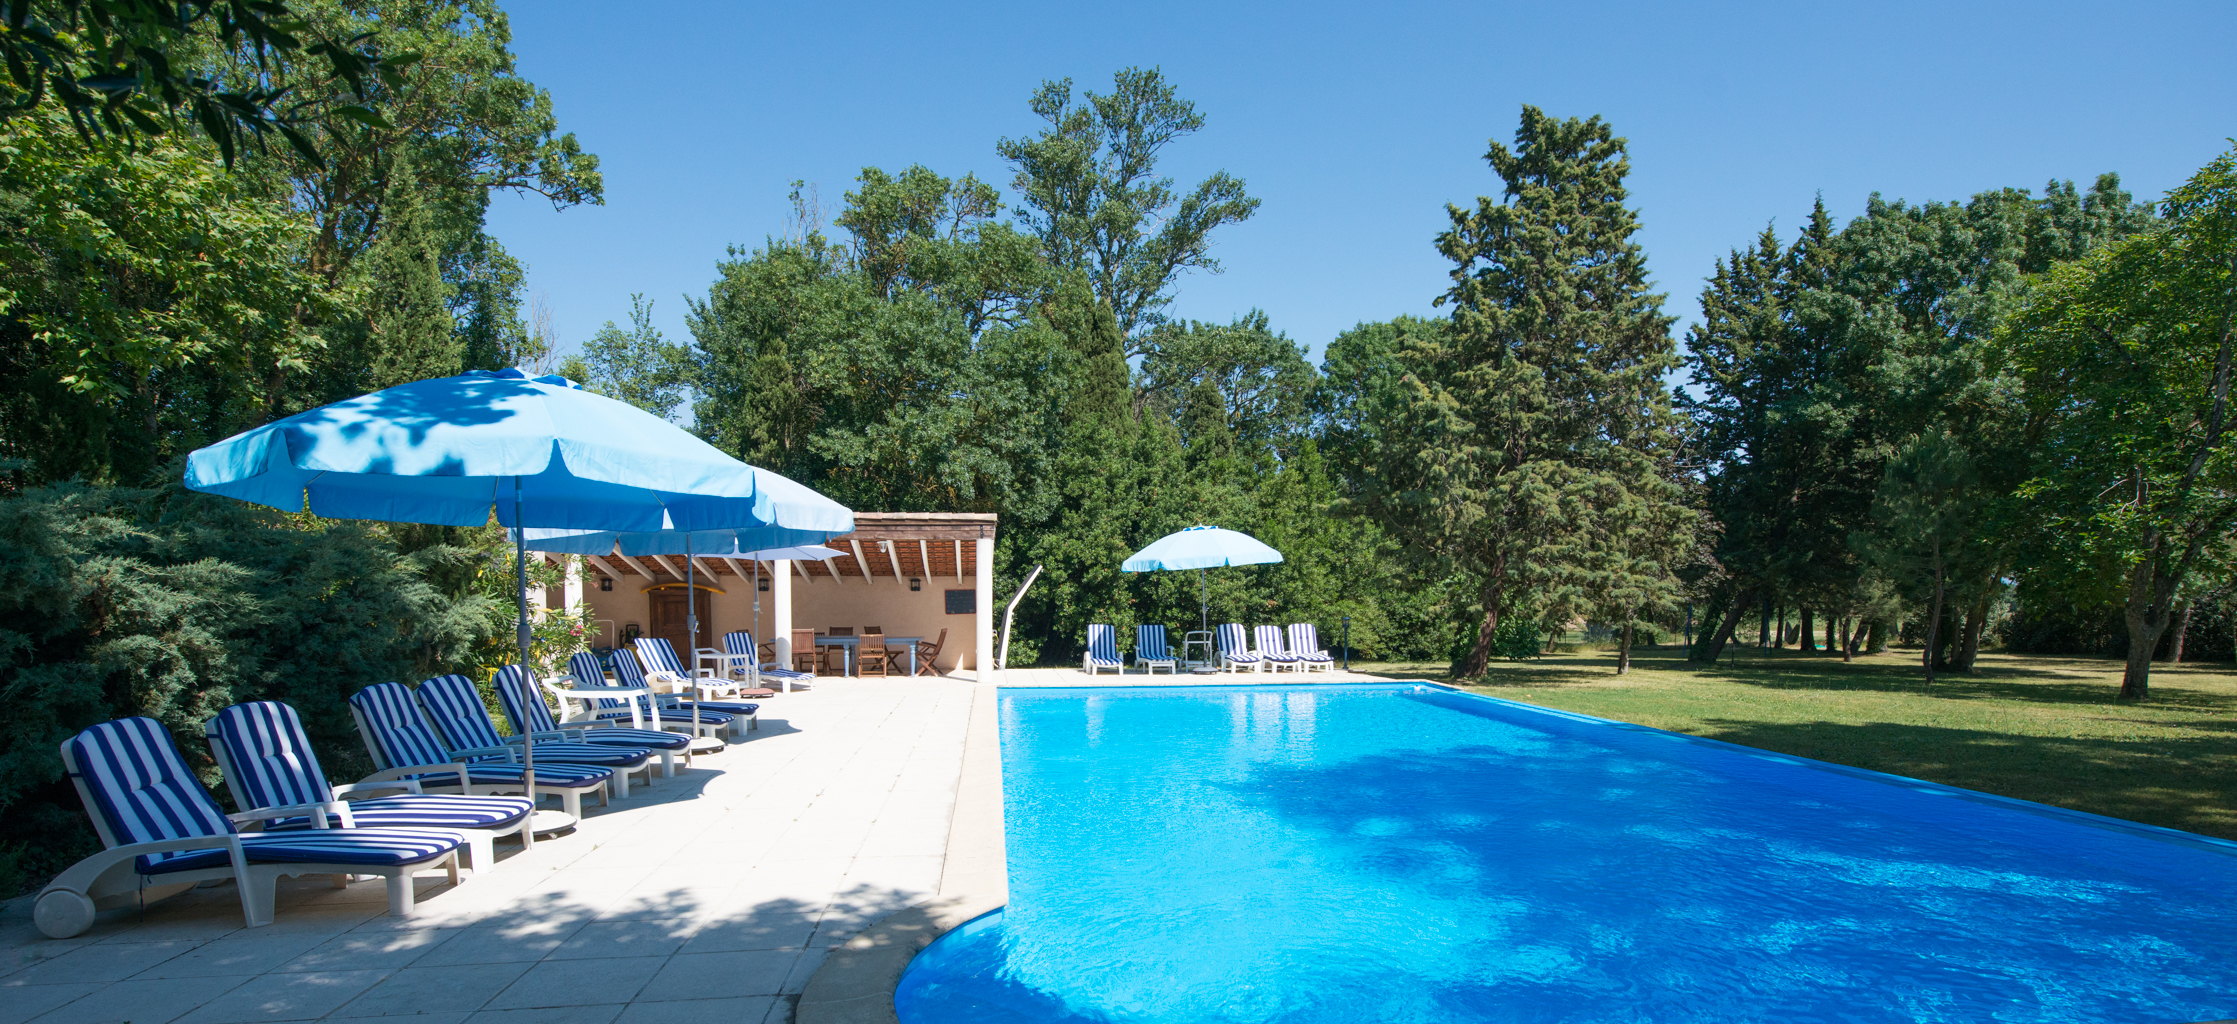 Holiday home le palmier carcassonne for Community swimming pool grants